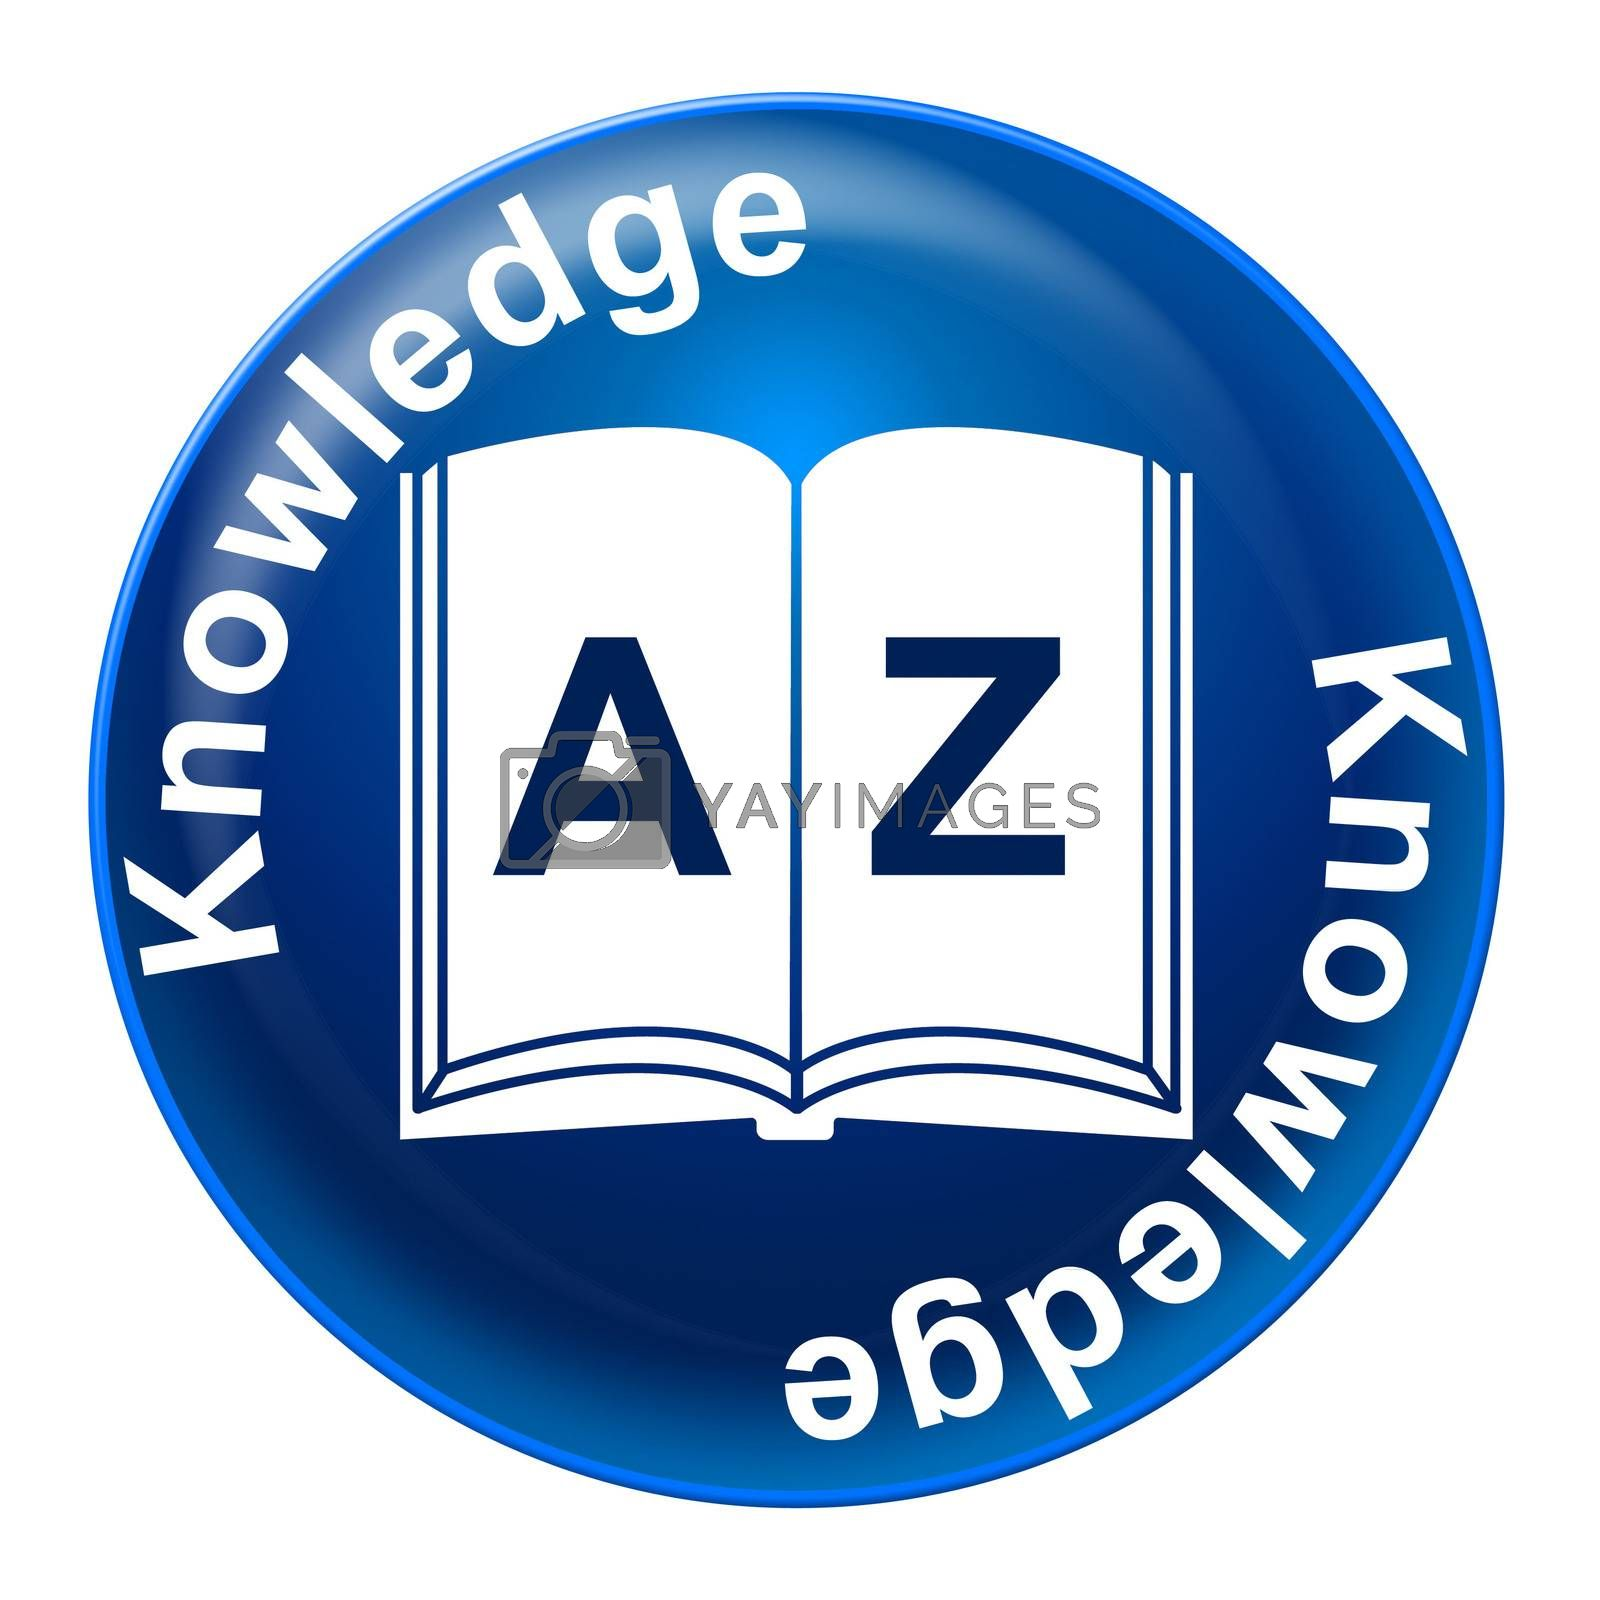 Knowledge Badge Means Educate Proficiency And Educating by stuartmiles